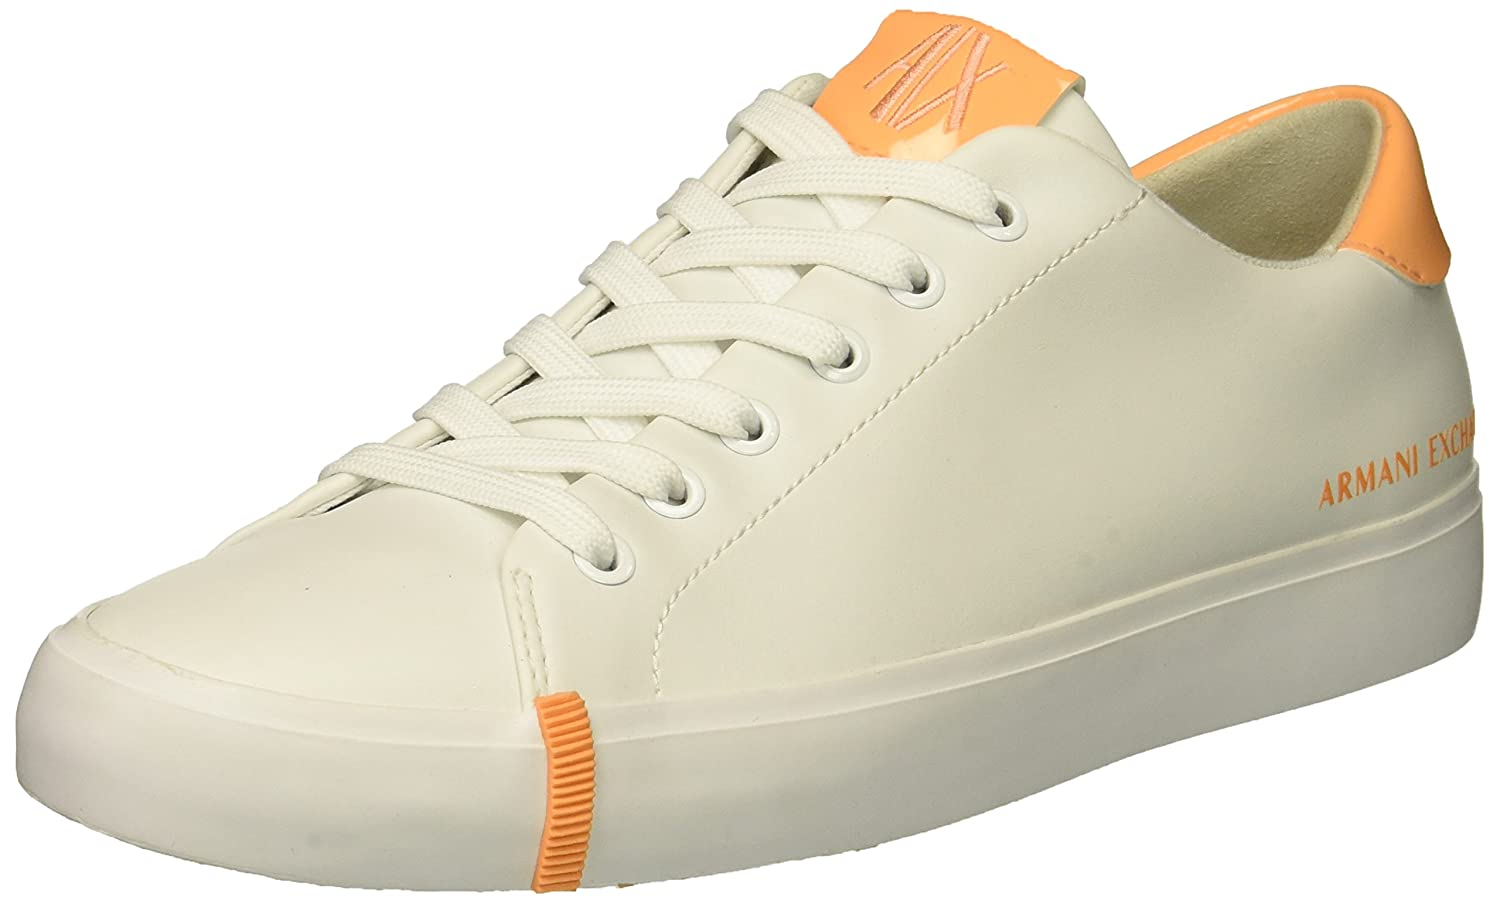 A|X Armani Exchange Women's Eco Leather Fashion Sneaker B0749WD1JJ 6 B(M) US|Bianco